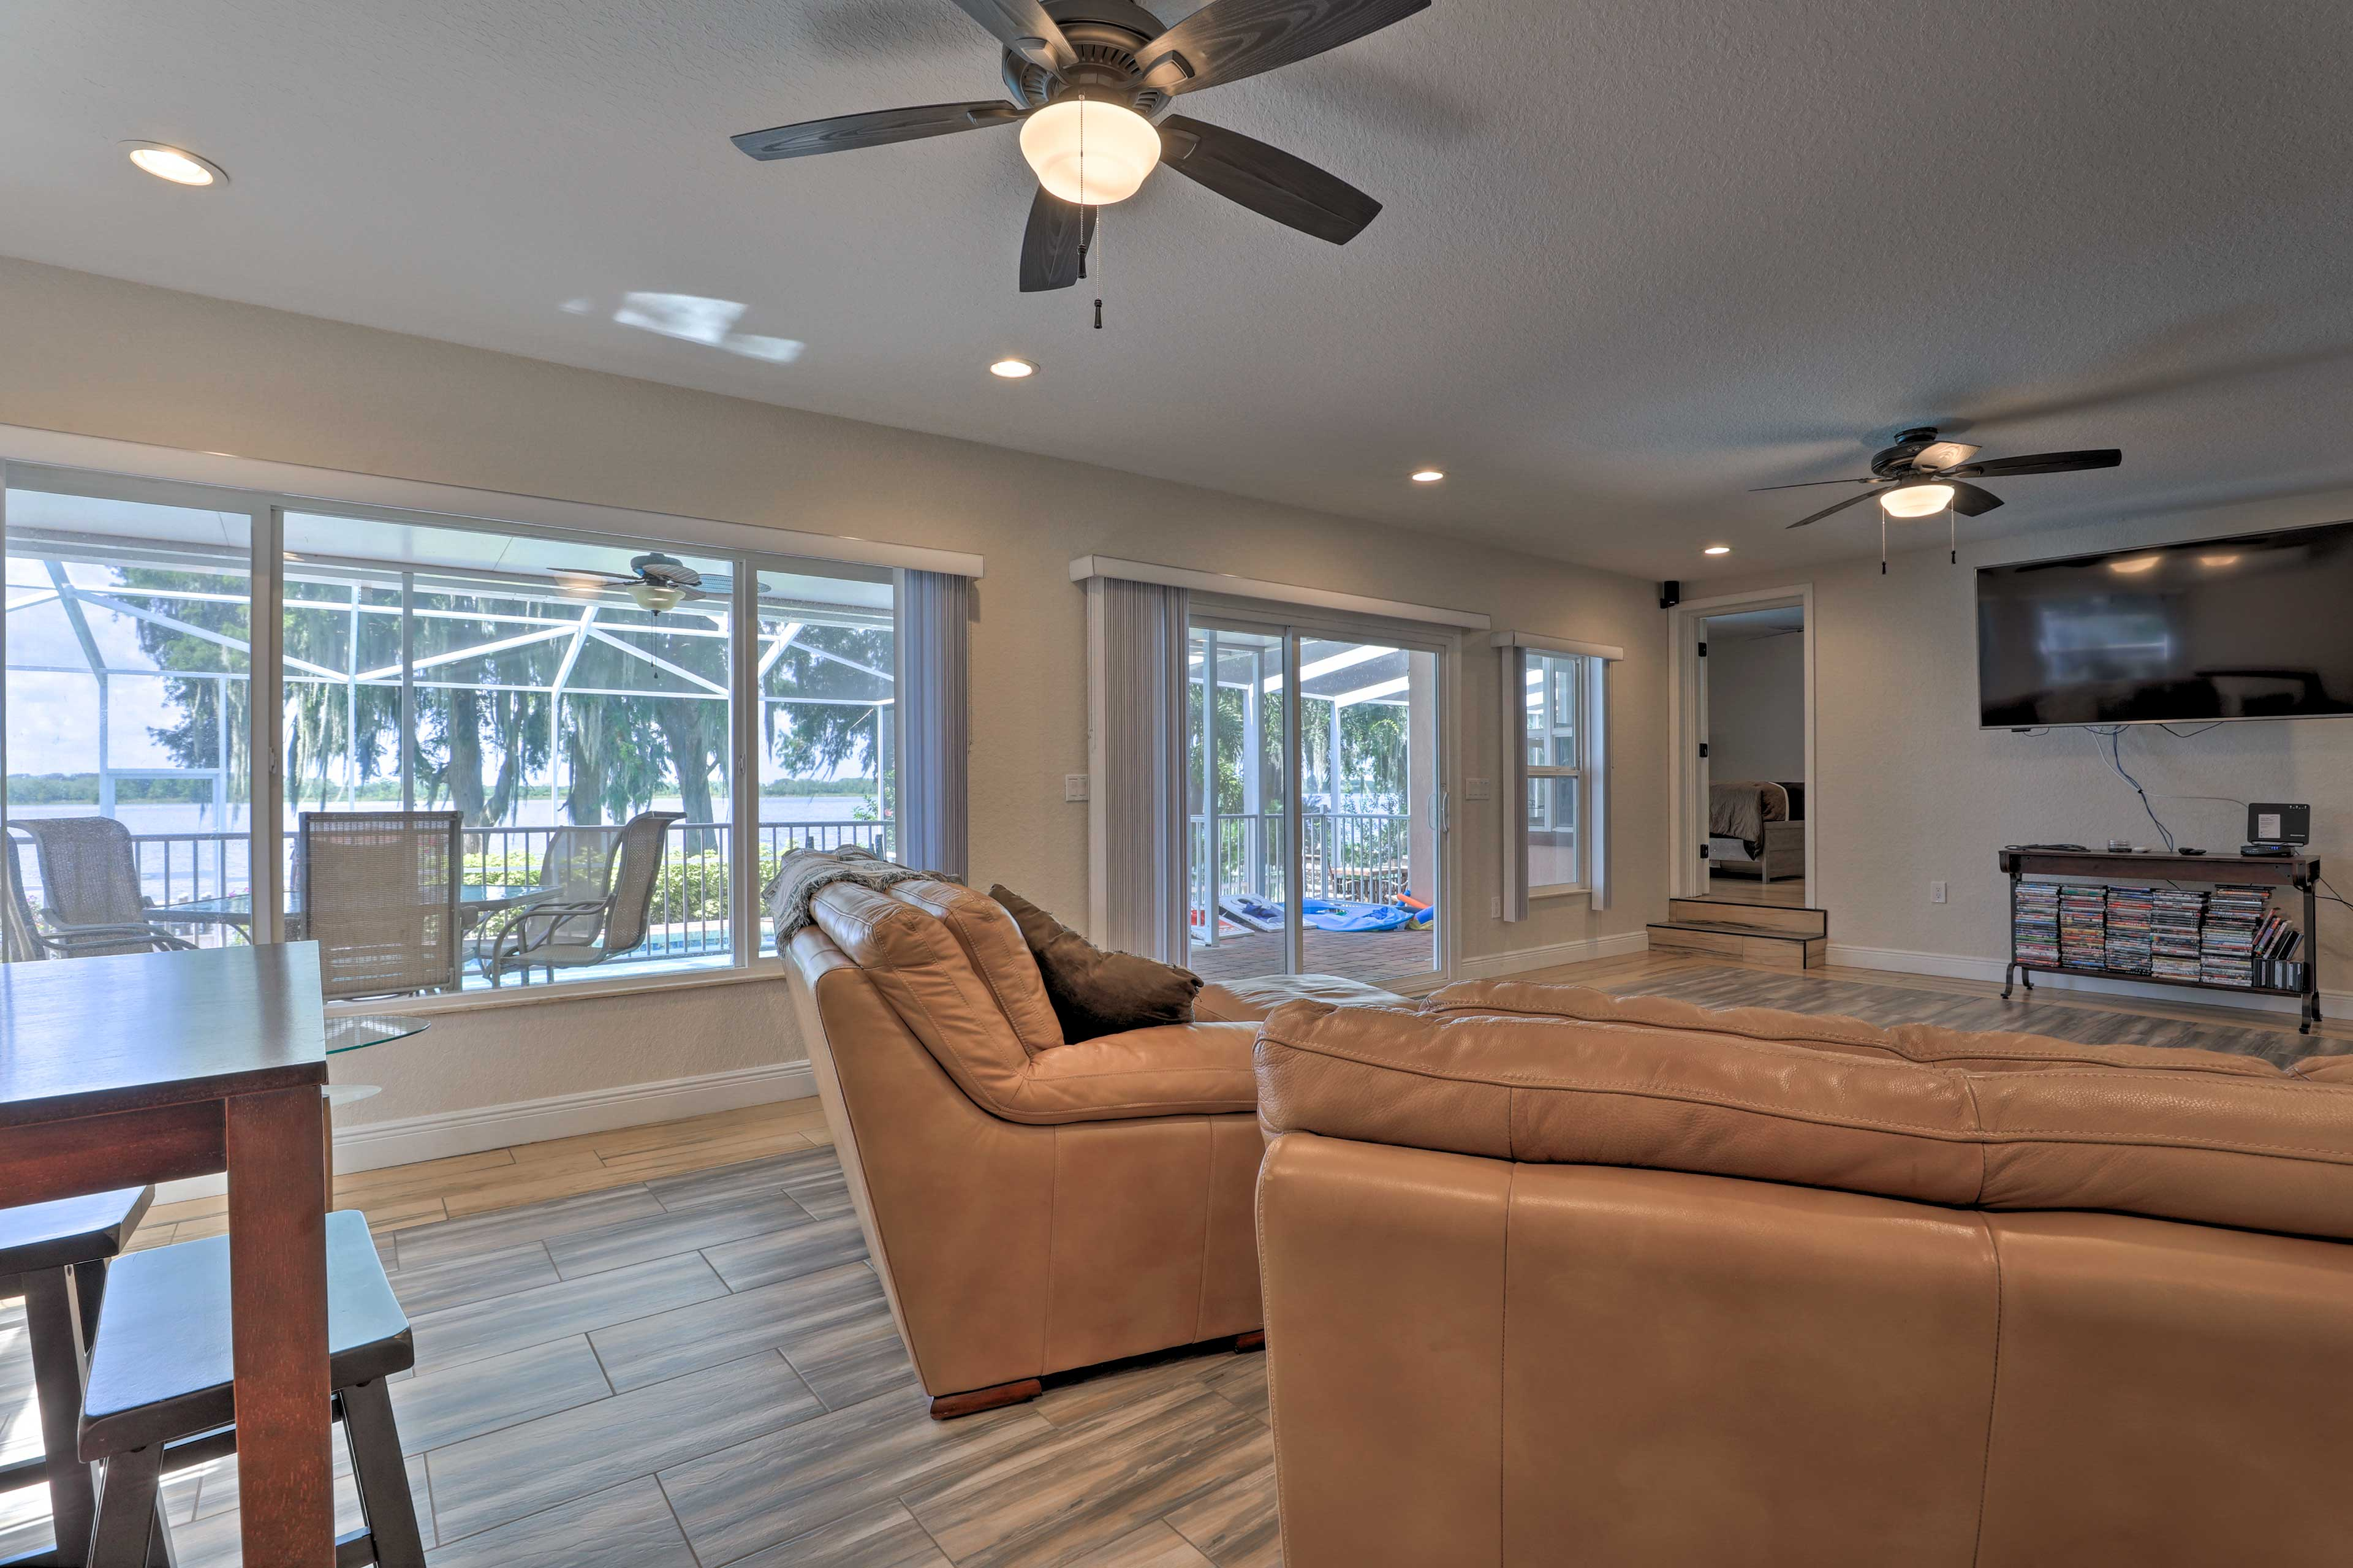 Sit in the living room and choose a movie to enjoy on the flat-screen TV!